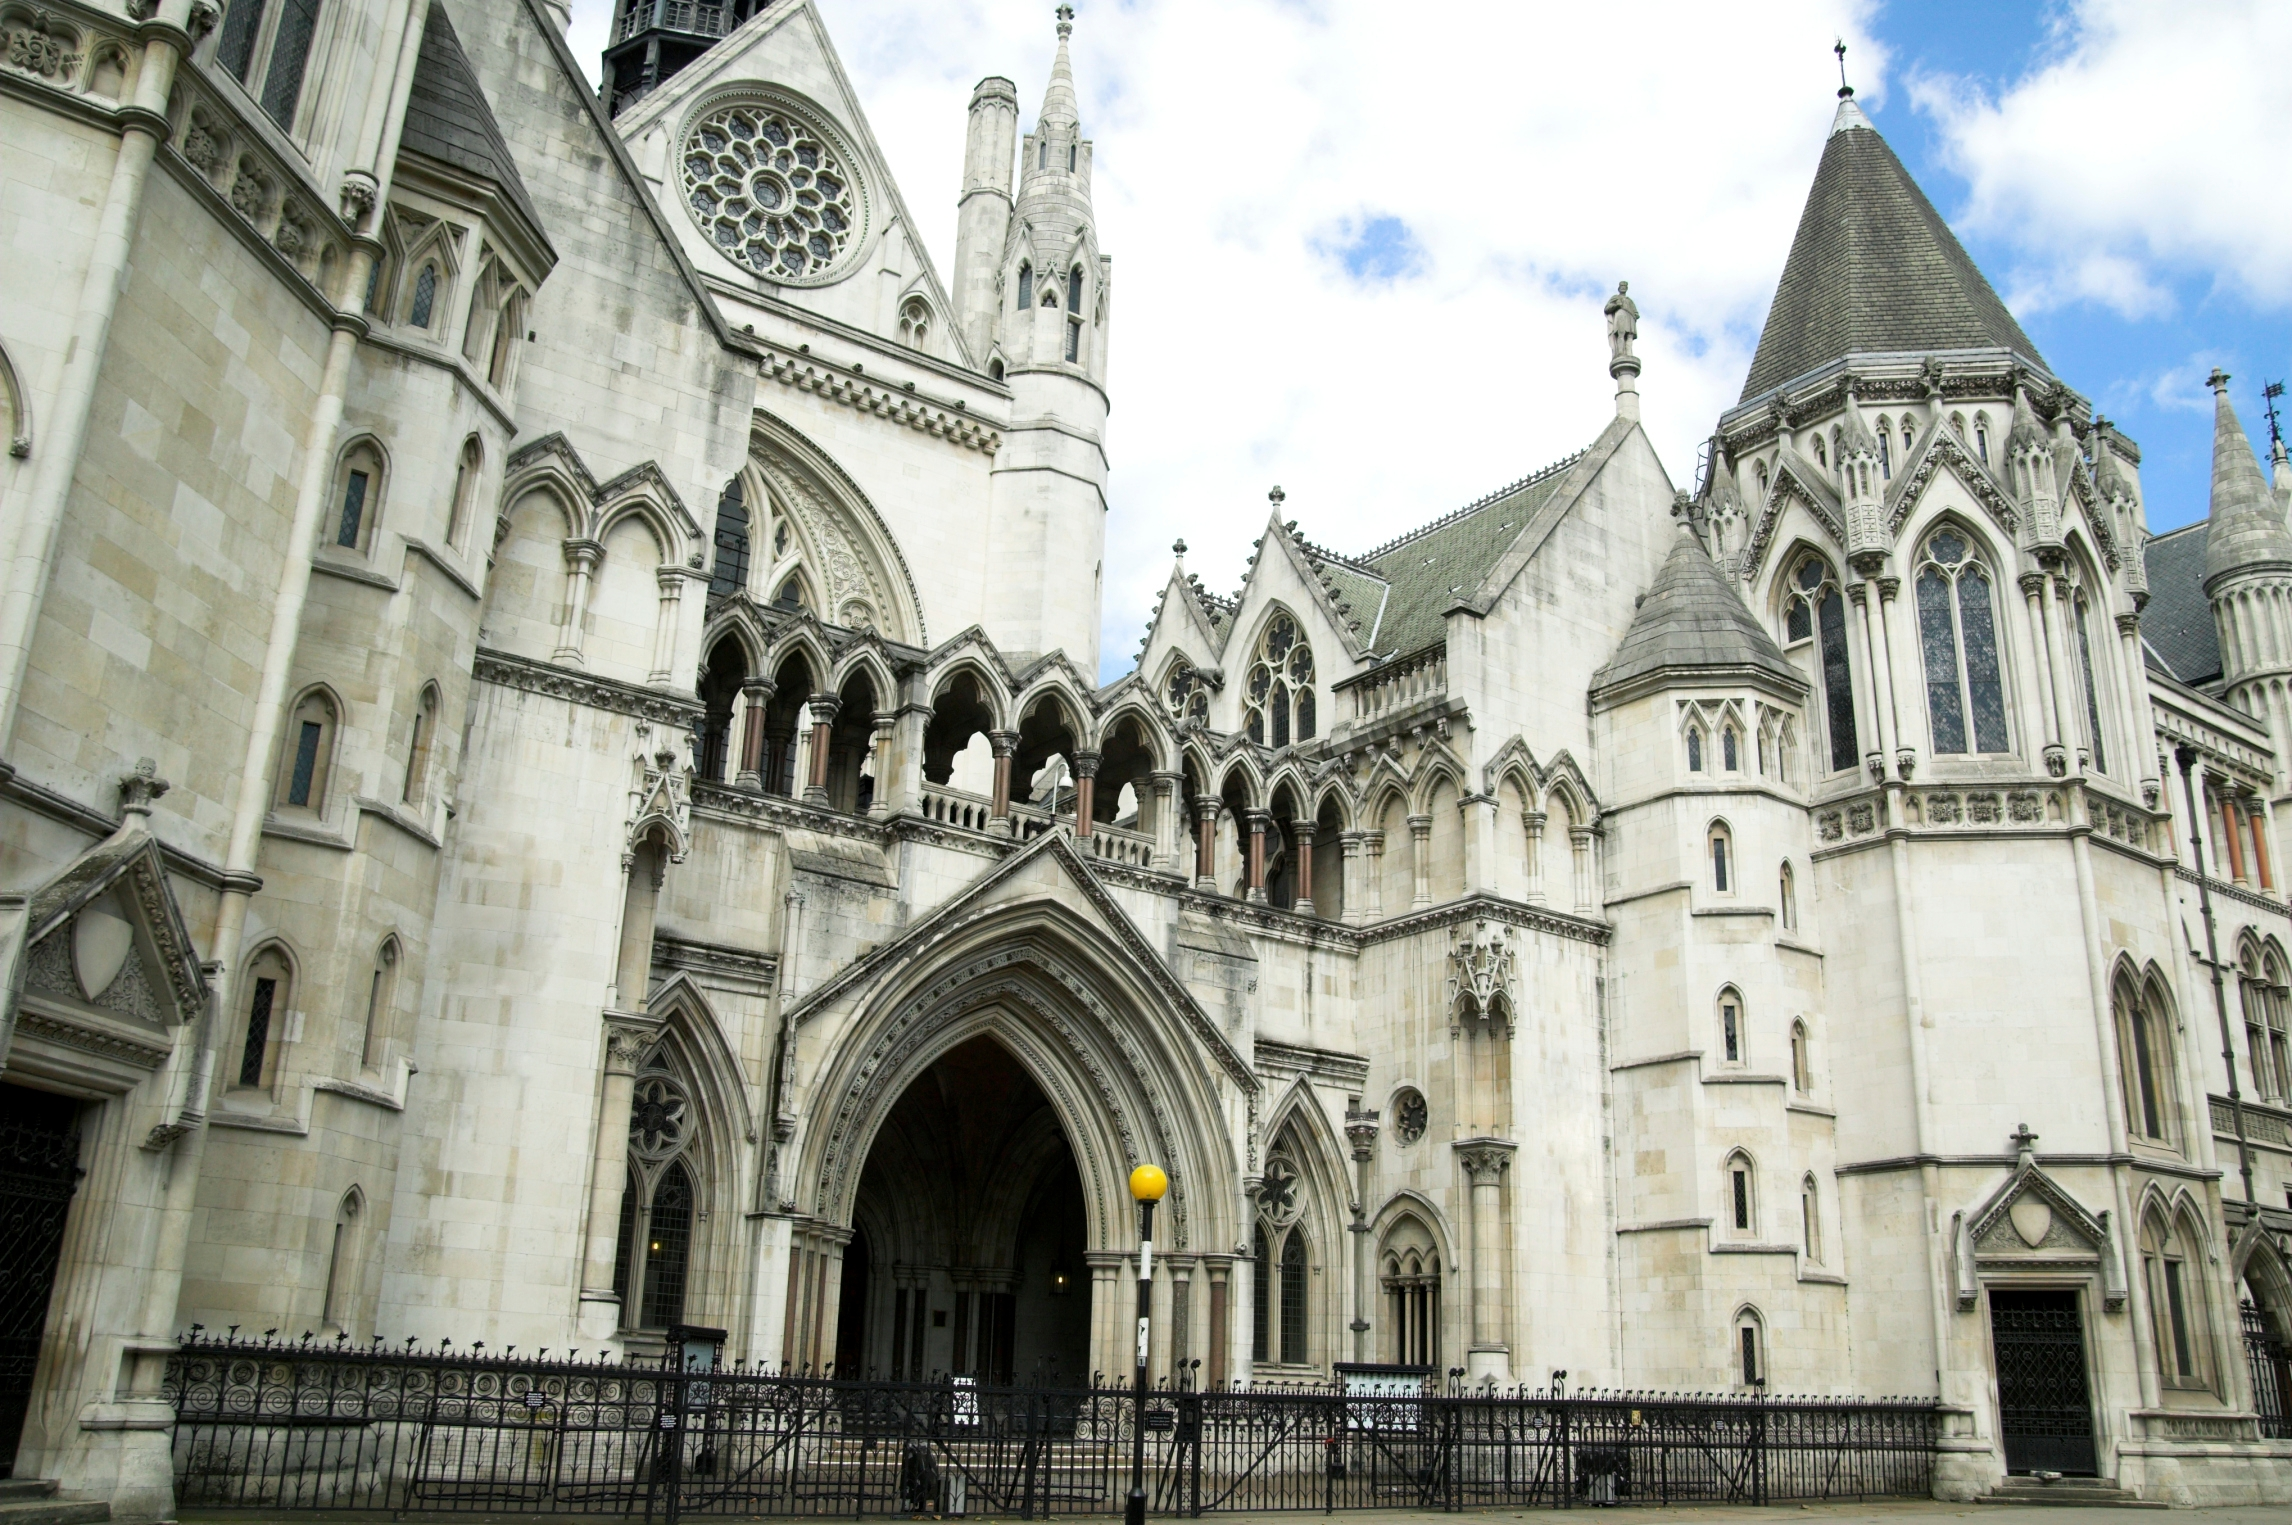 Royal Courts of Justice where the inquest was held